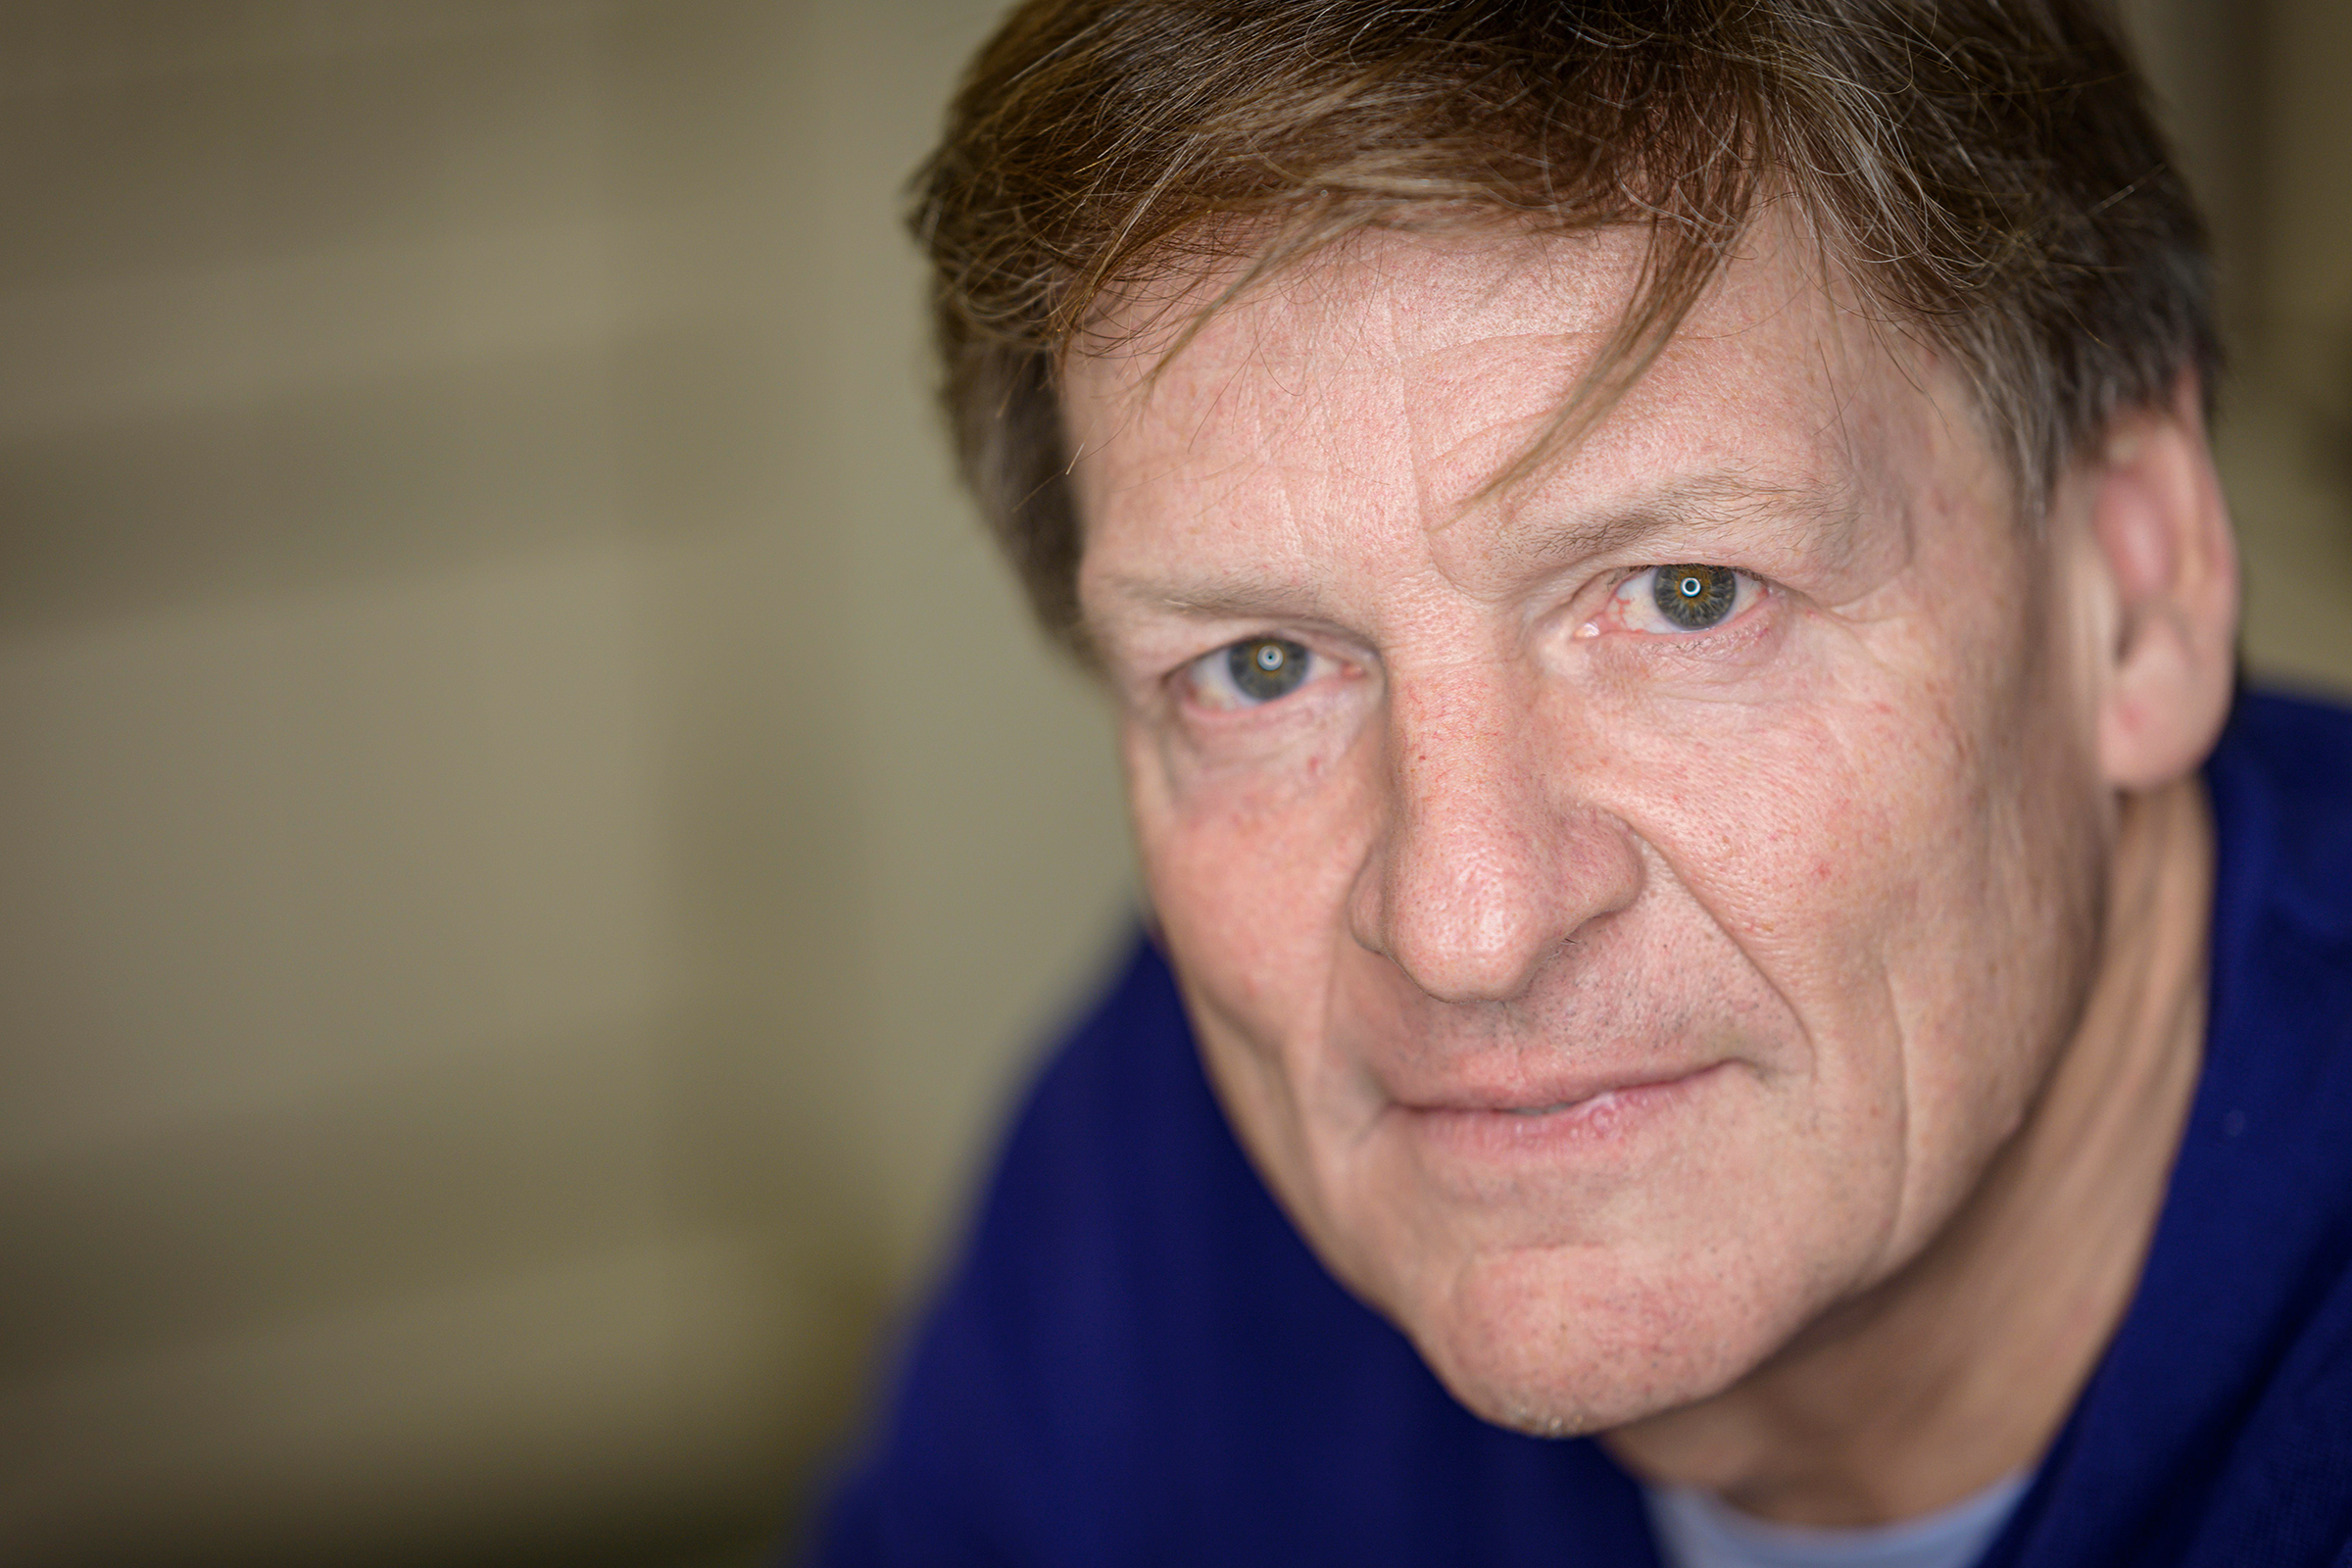 Michael Lewis poses for a portrait in 2019.